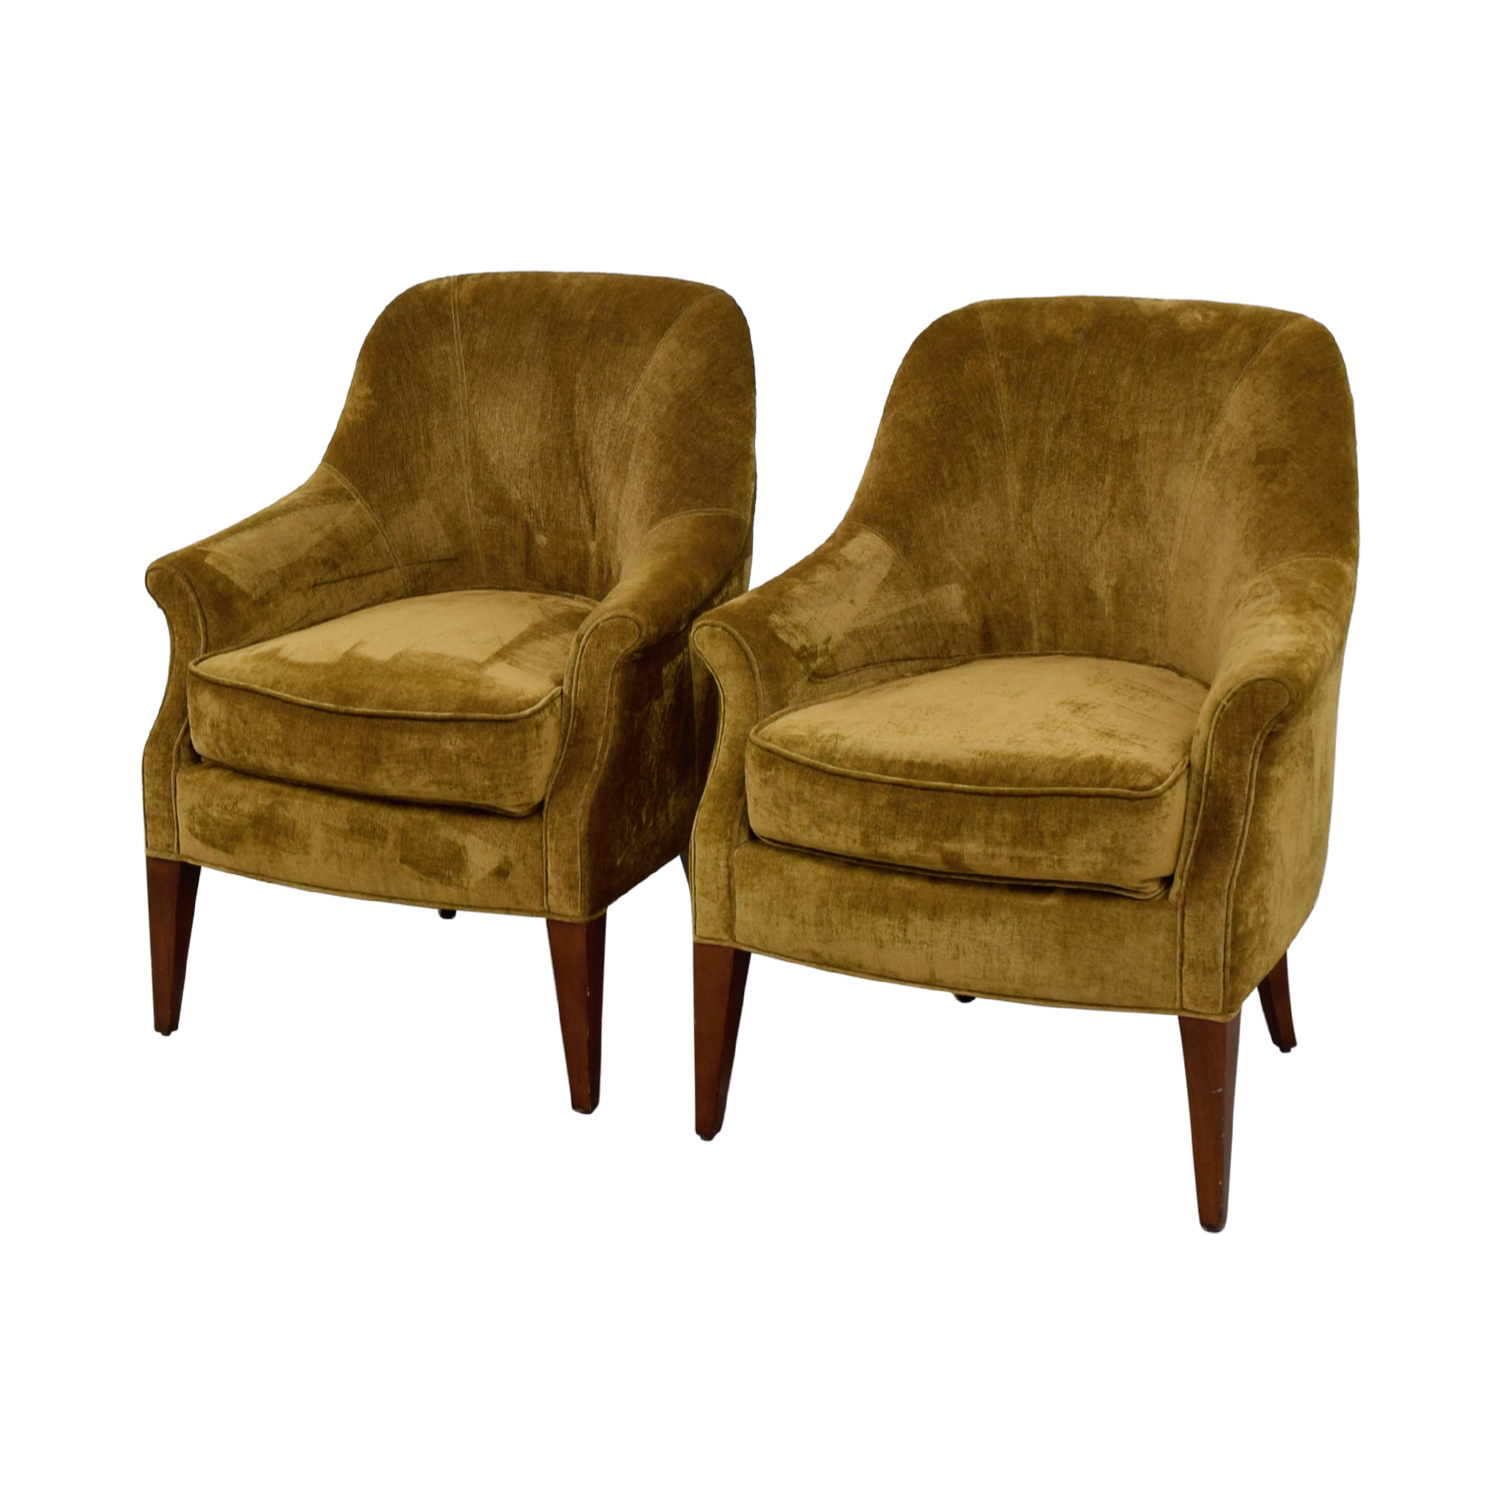 ... Pier 1 Imports Pier 1 Imports Brown Upholstered Accent Chairs Price ...